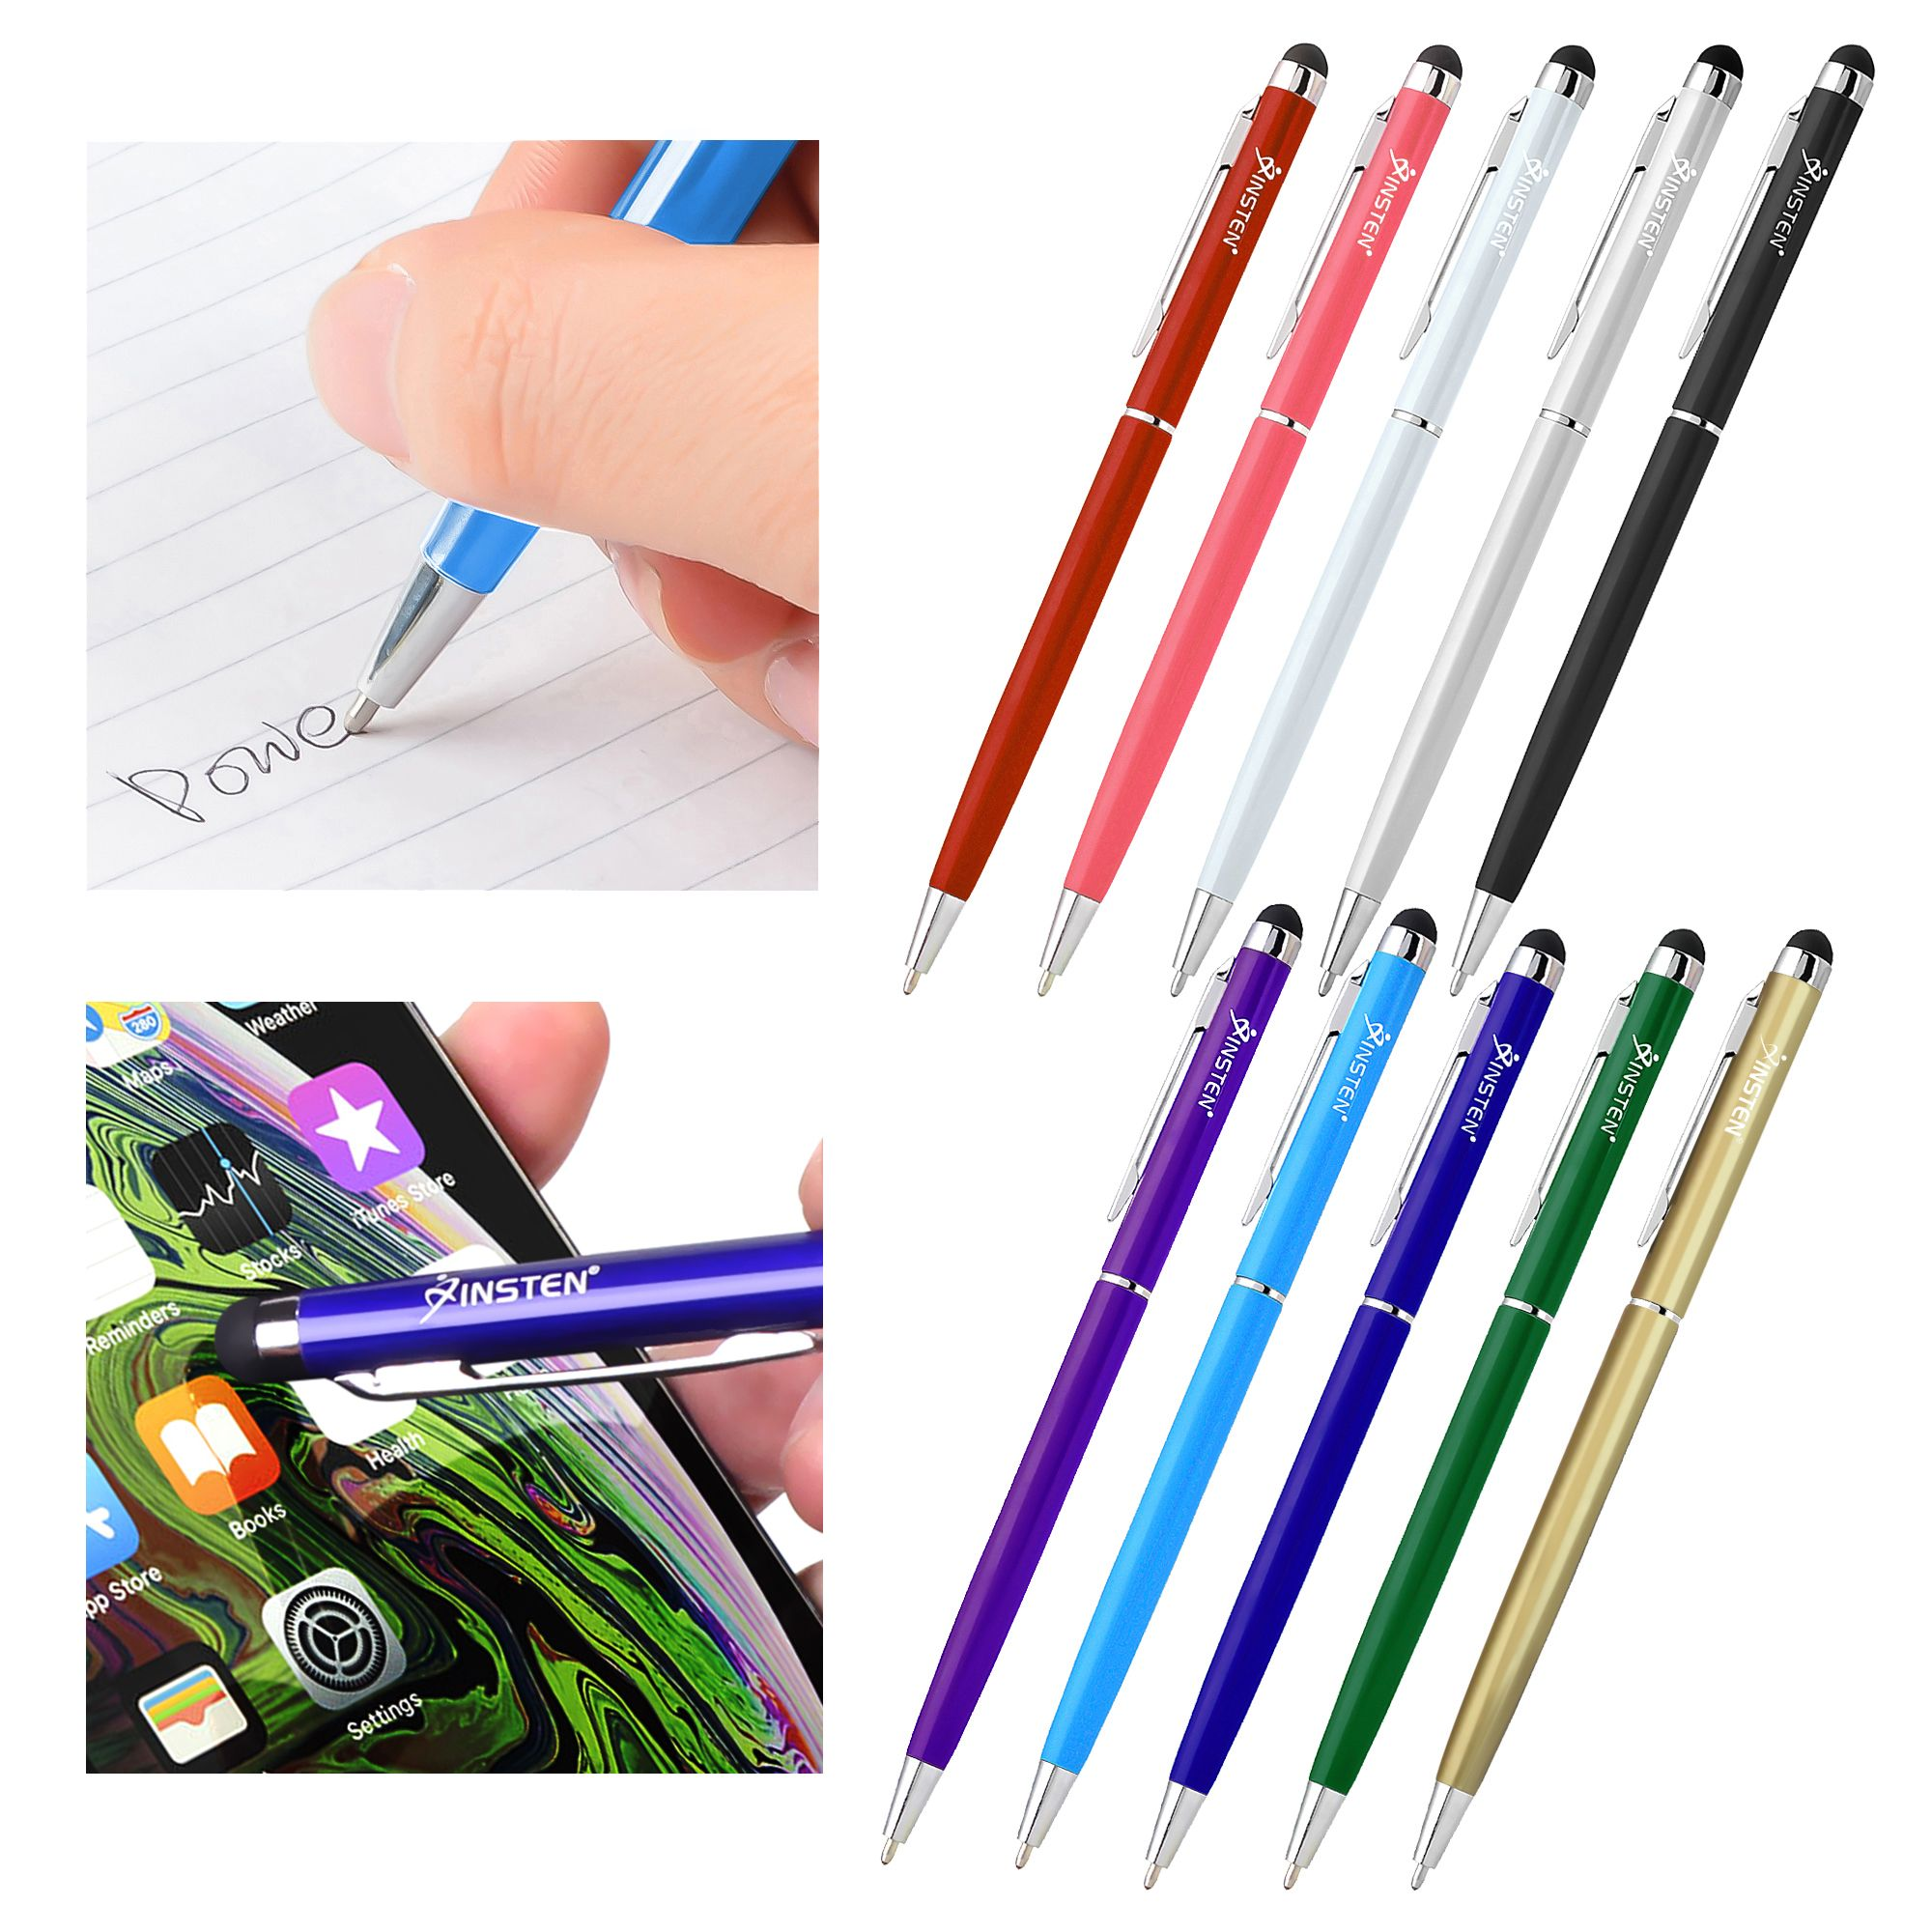 Insten 10pcs 2-in-1 Stylus Pens for Tablets Touch Screen with Ball Pen For iPad iPhone XS XS Max XR 7 6 Plus Samsung Galaxy S10 Plus S10e Tab E View Ematic HIGHQ Sprout Channel Dragon Touch Nextbook